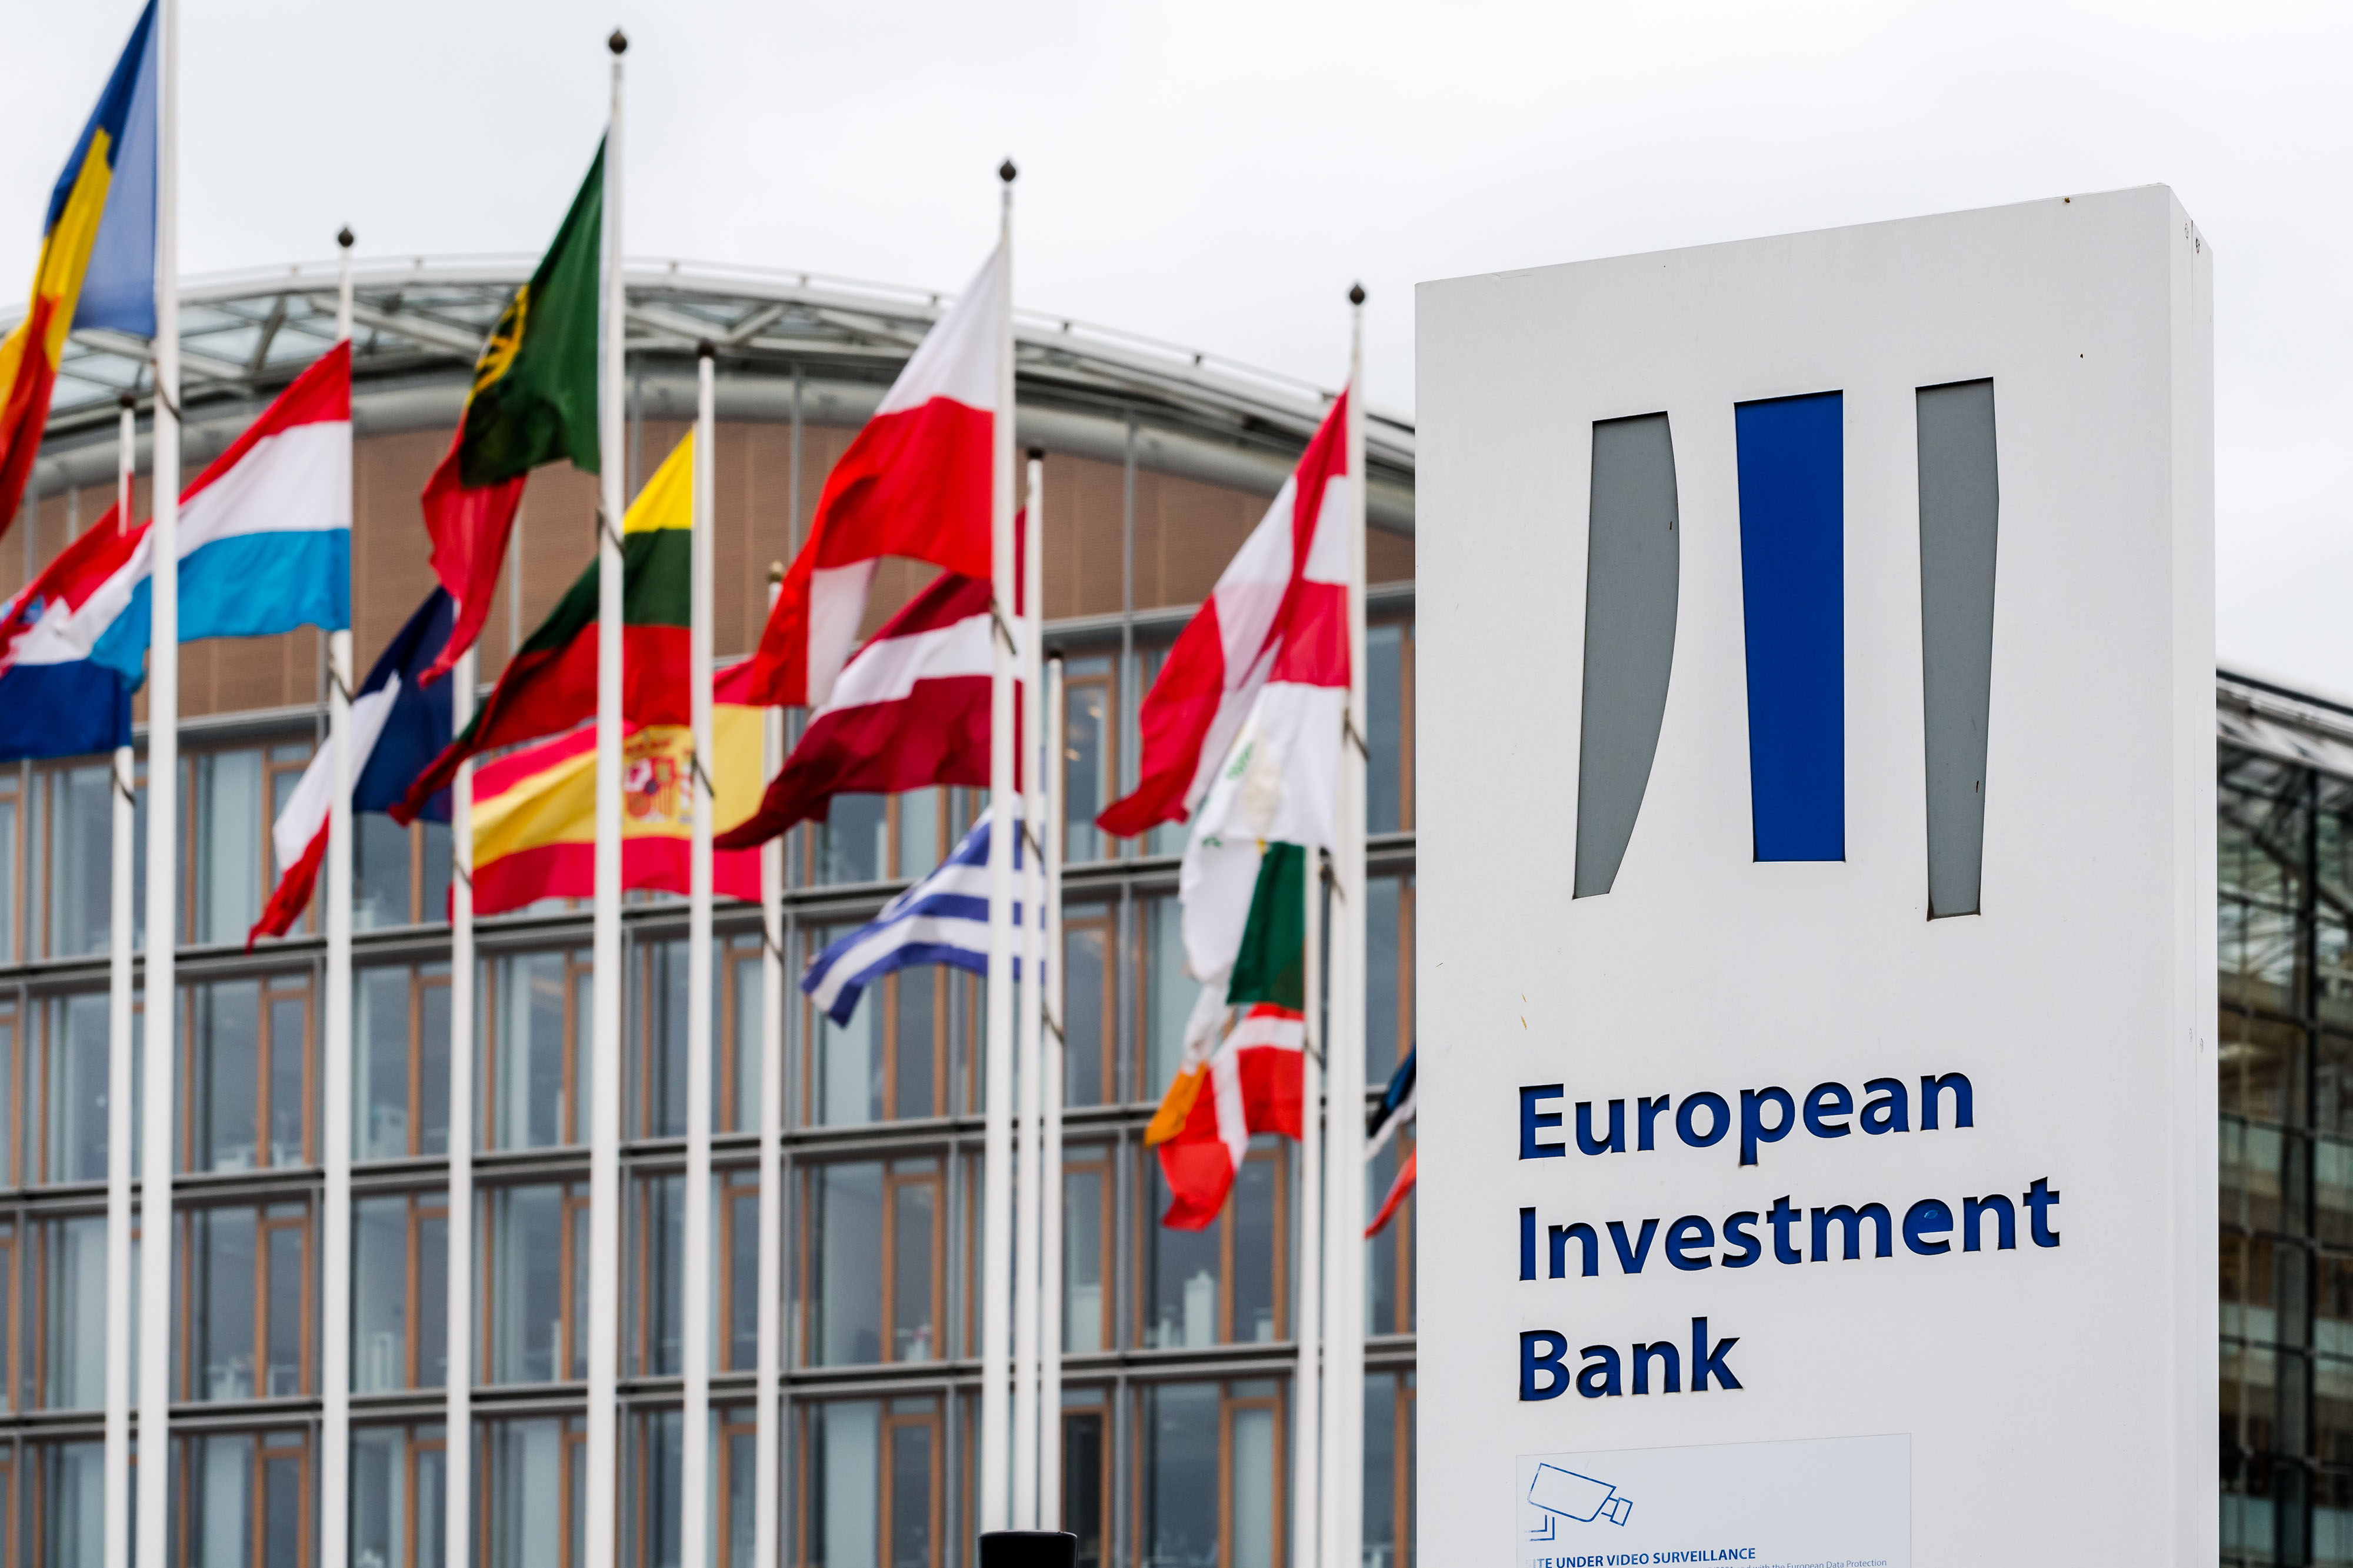 where is the european investment bank located outside